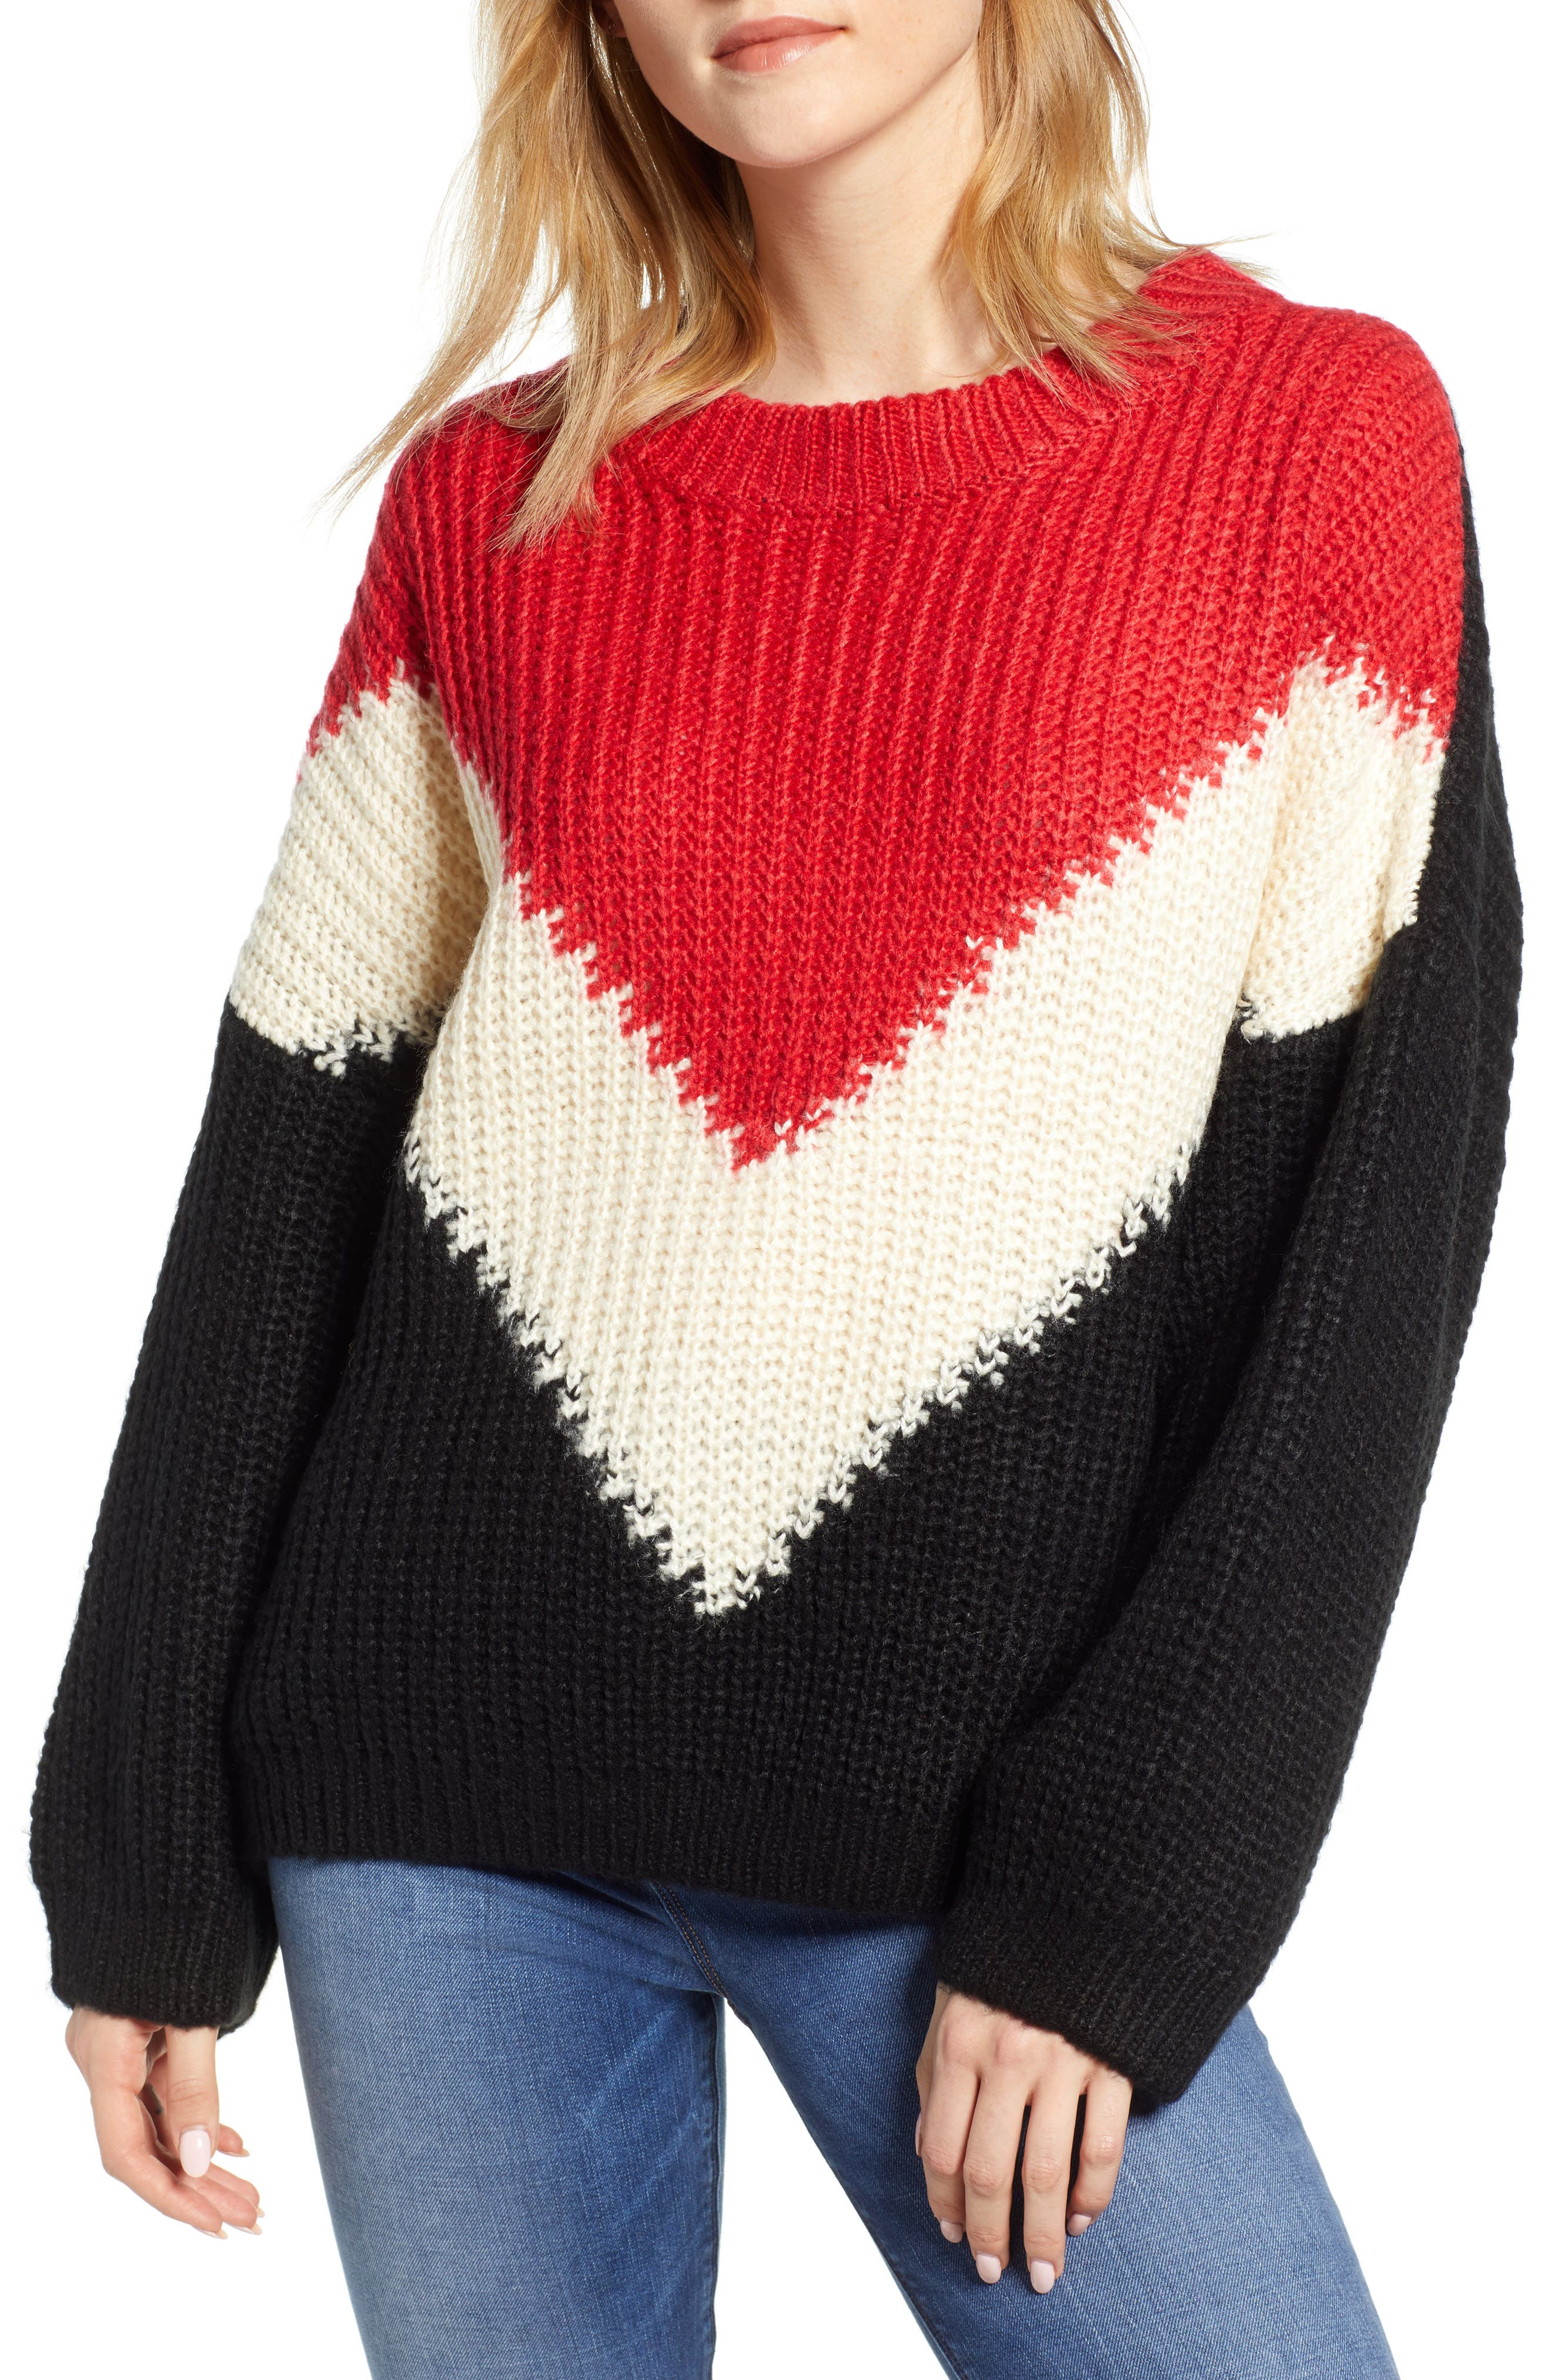 BISHOP + YOUNG The Anthem Colorblock Shaker Sweater, Main, color, BLACK